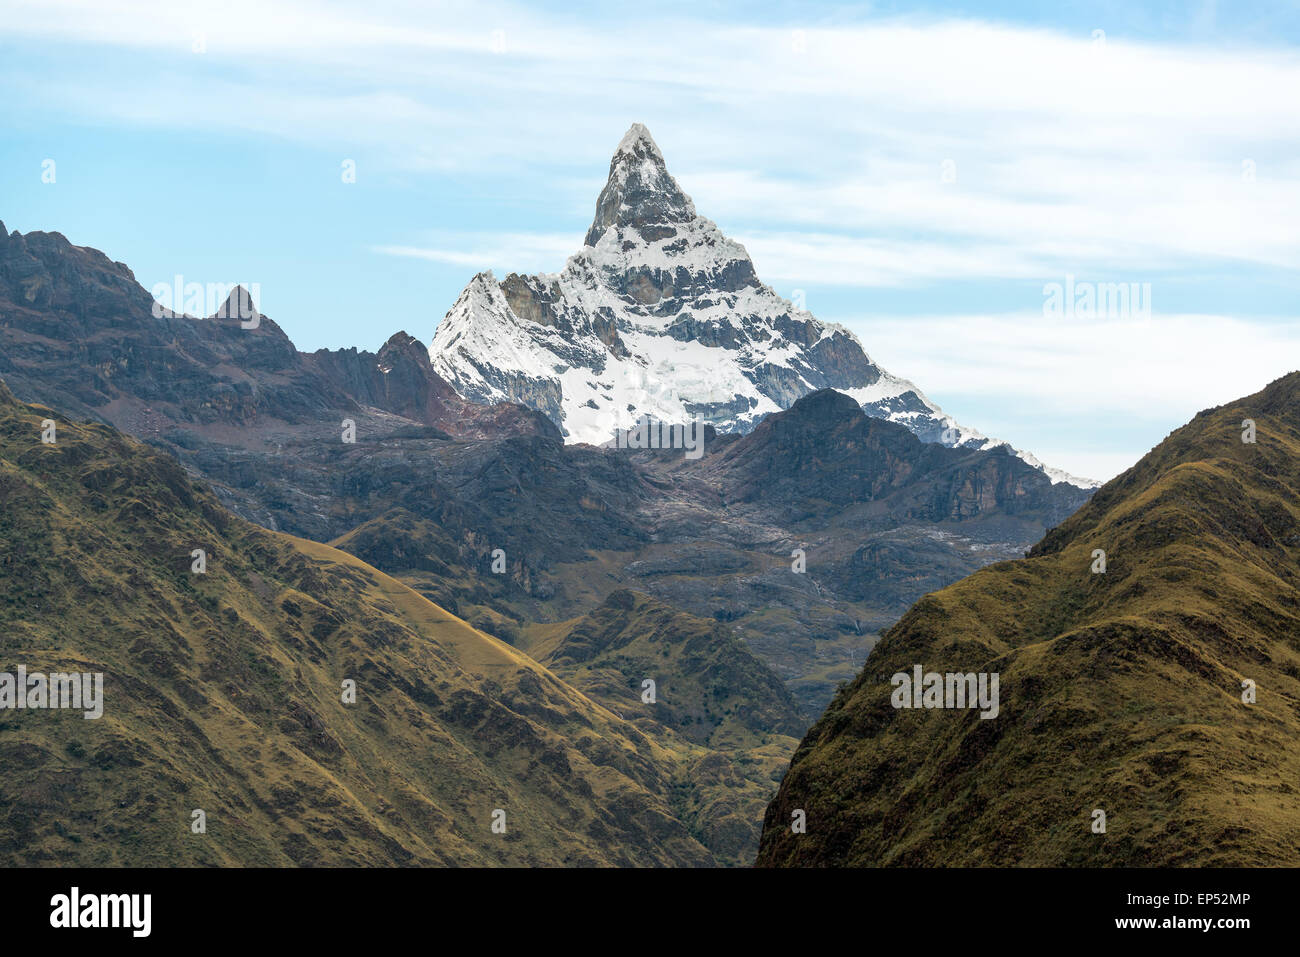 View of Alpamayo Mountain in the Cordillera Blanca near Huaraz, Peru - Stock Image